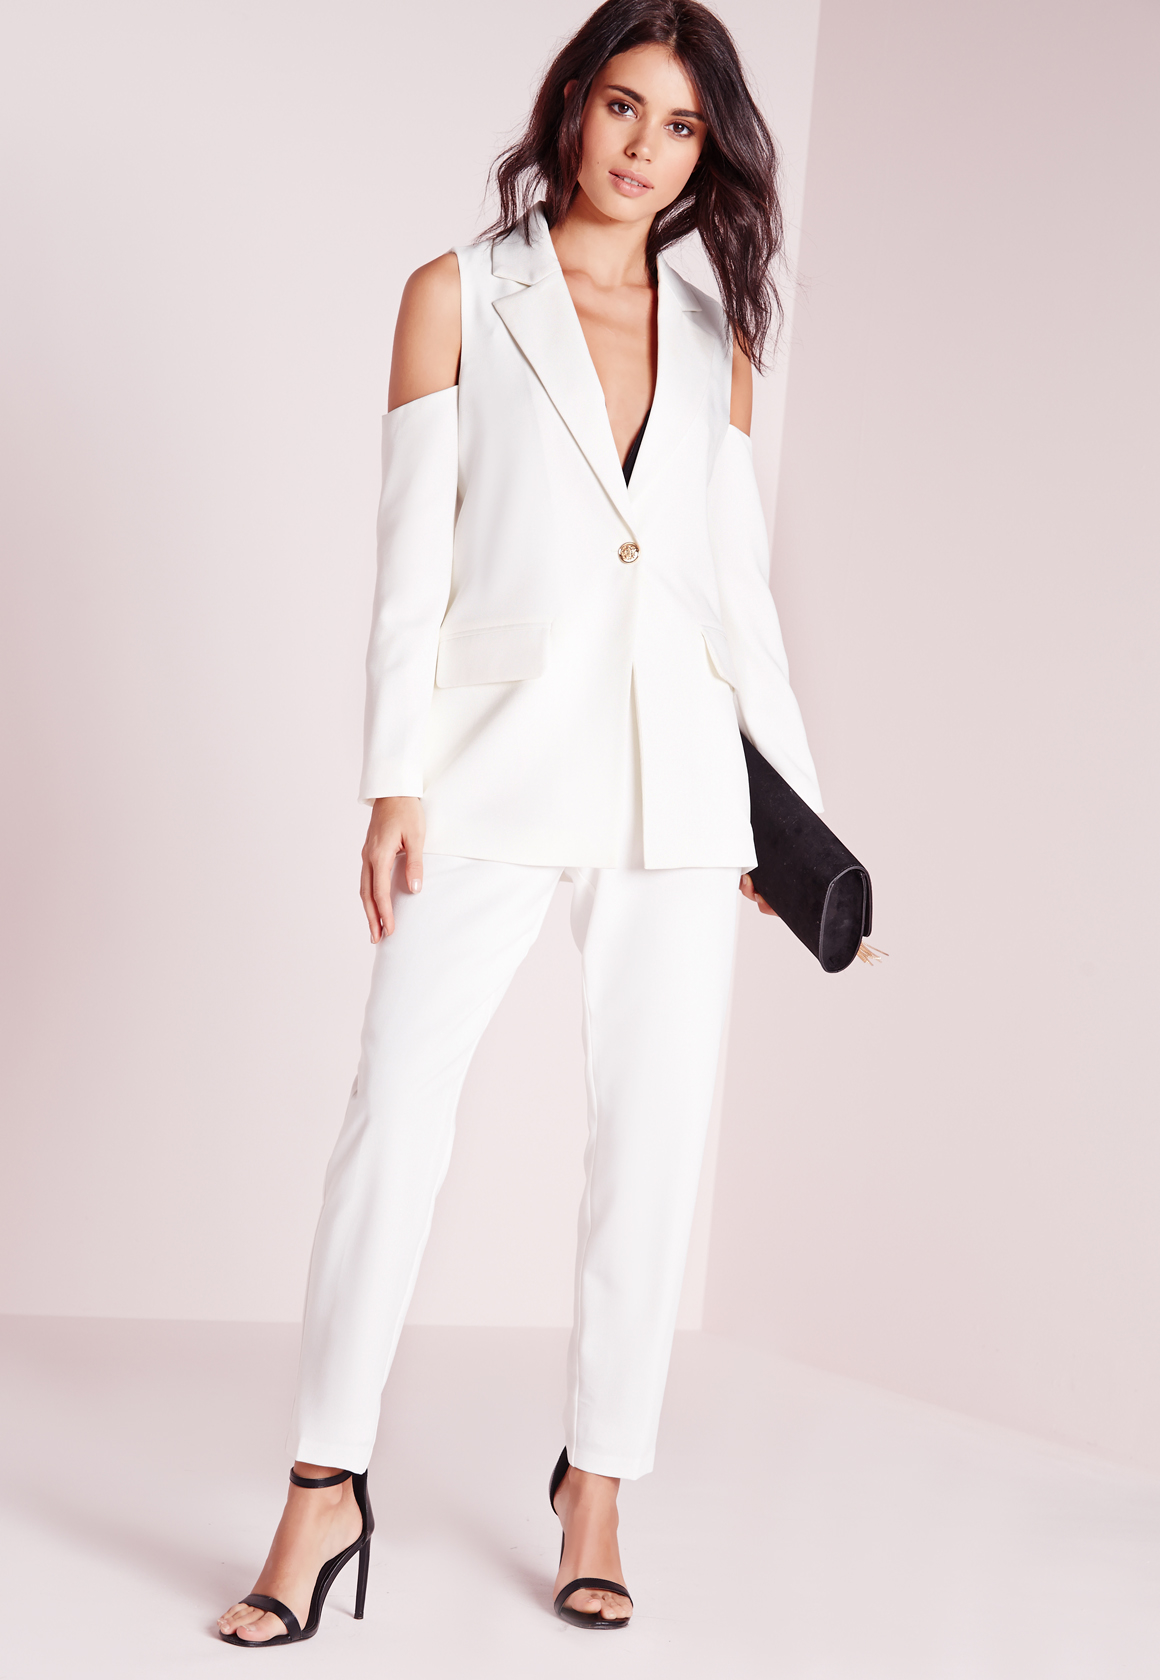 ac7ad41febb84a Lyst - Missguided Cold Shoulder Tailored Blazer White in White